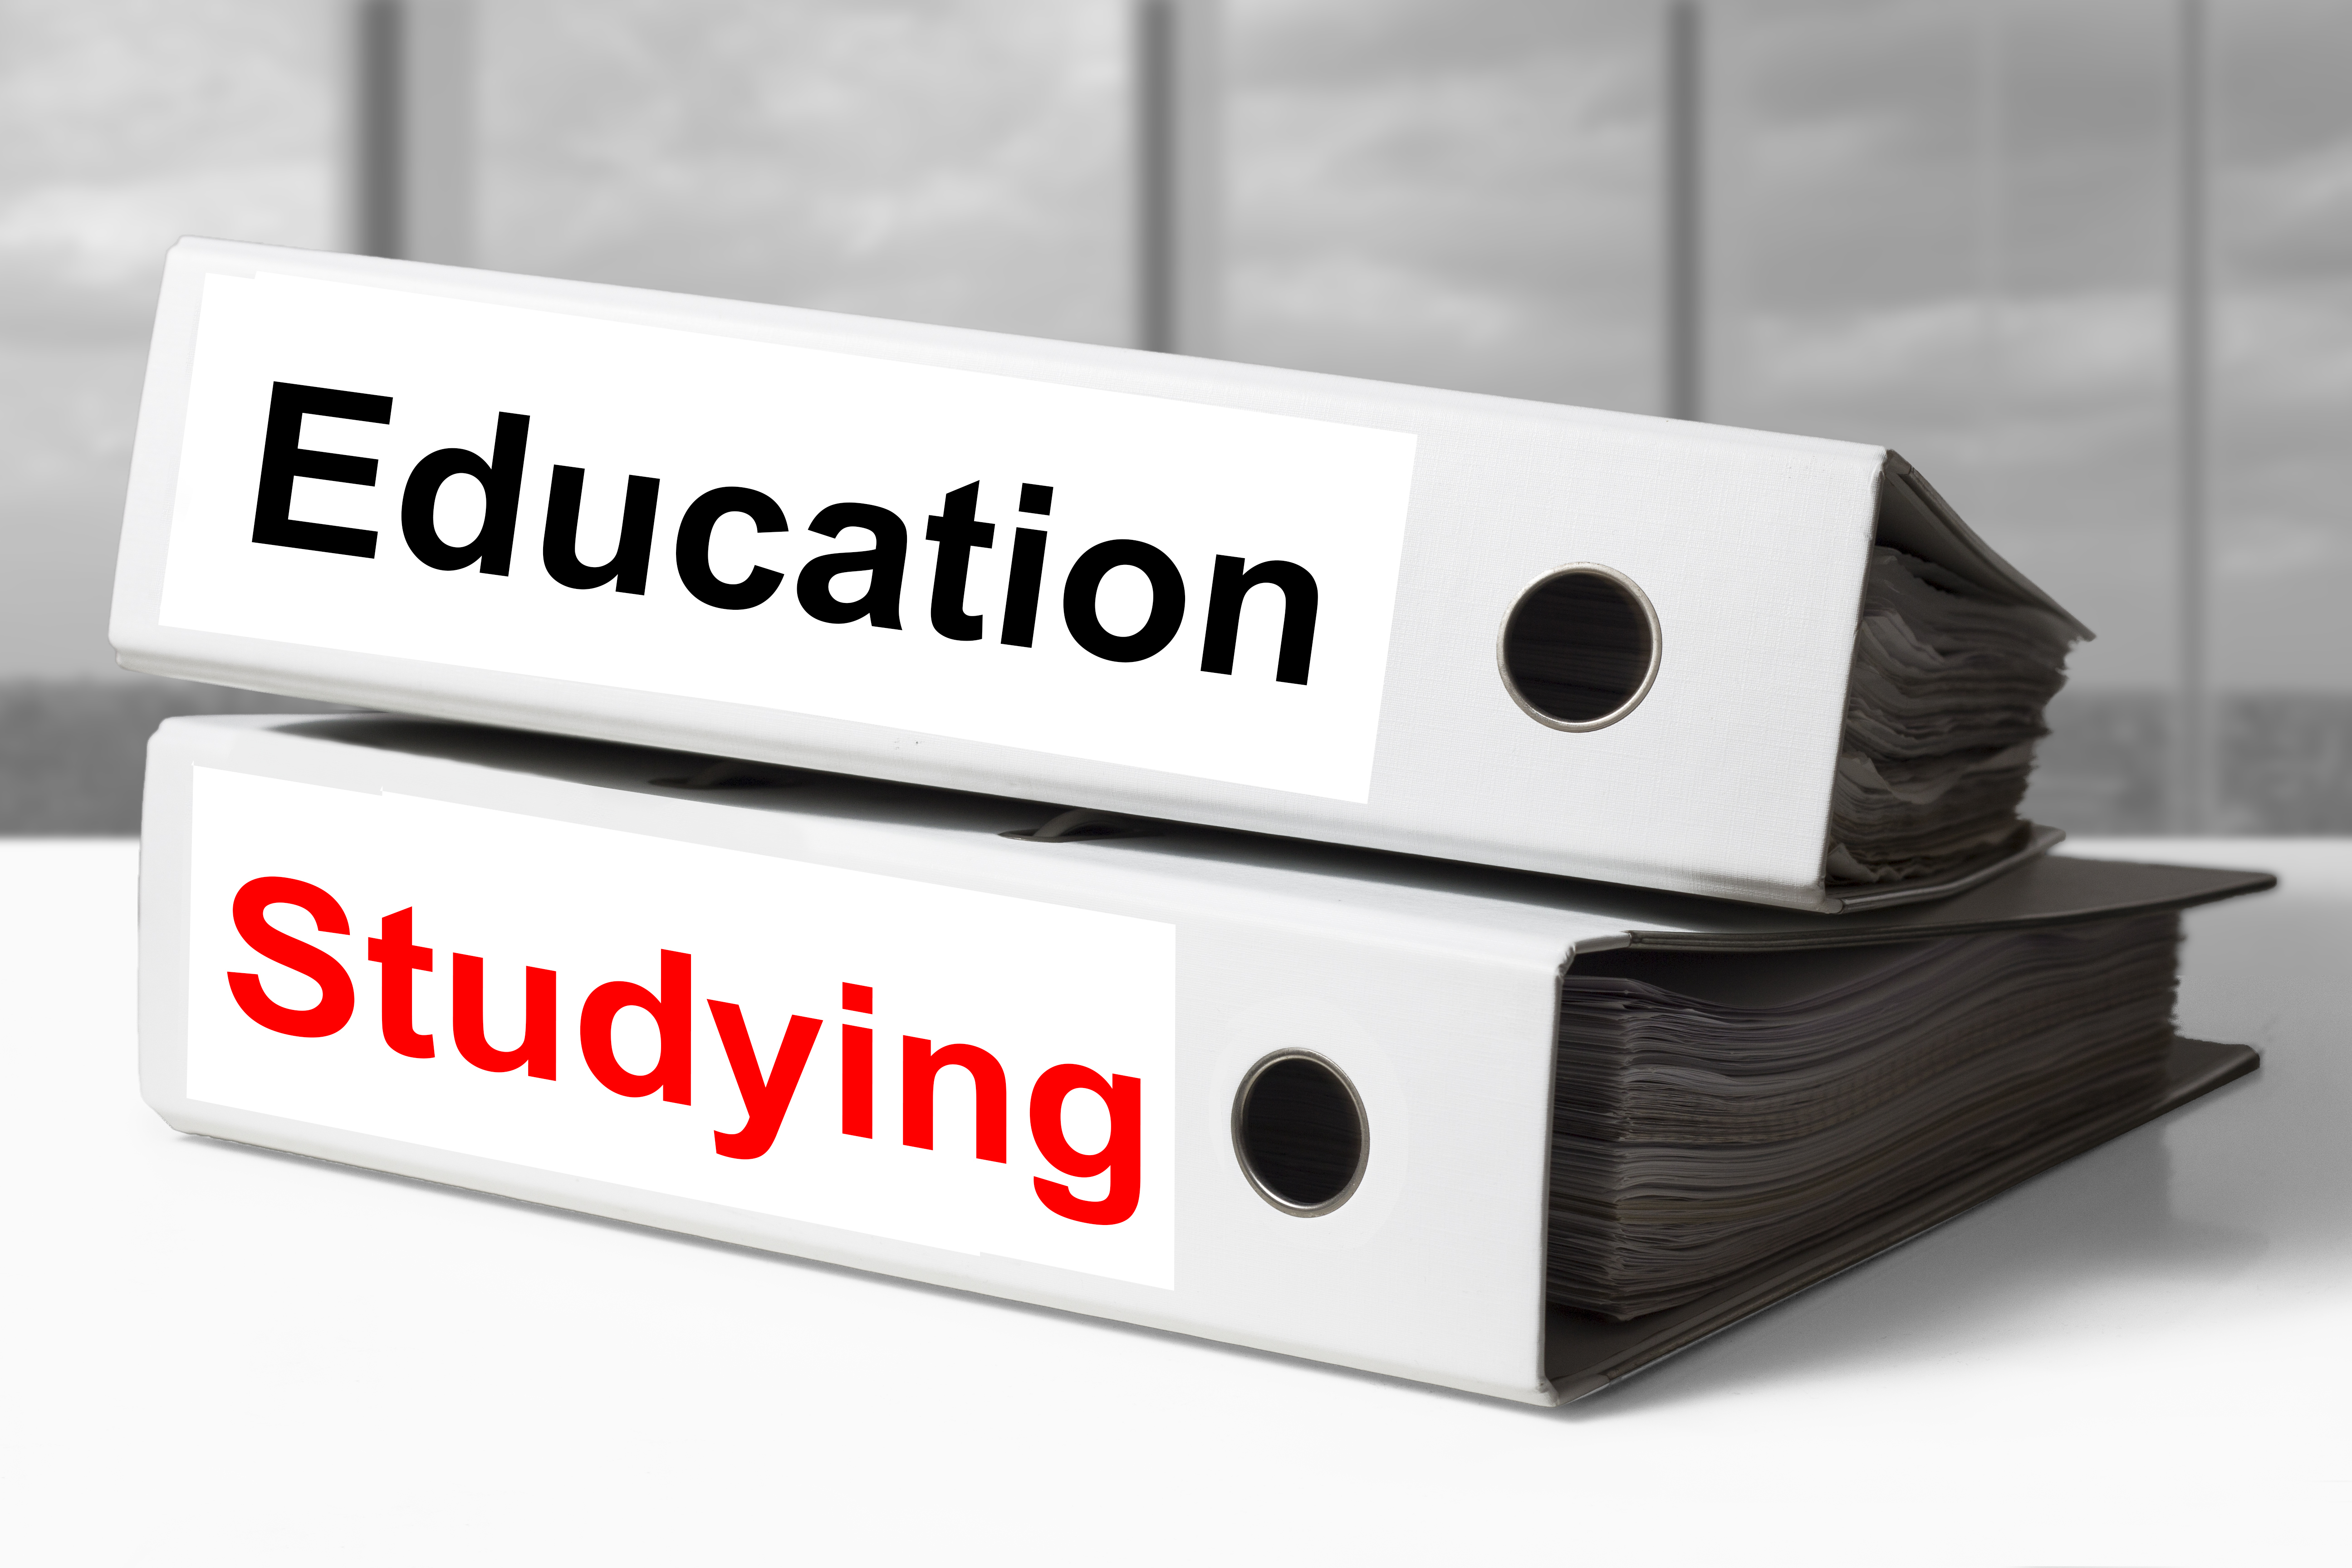 Education and studying binders